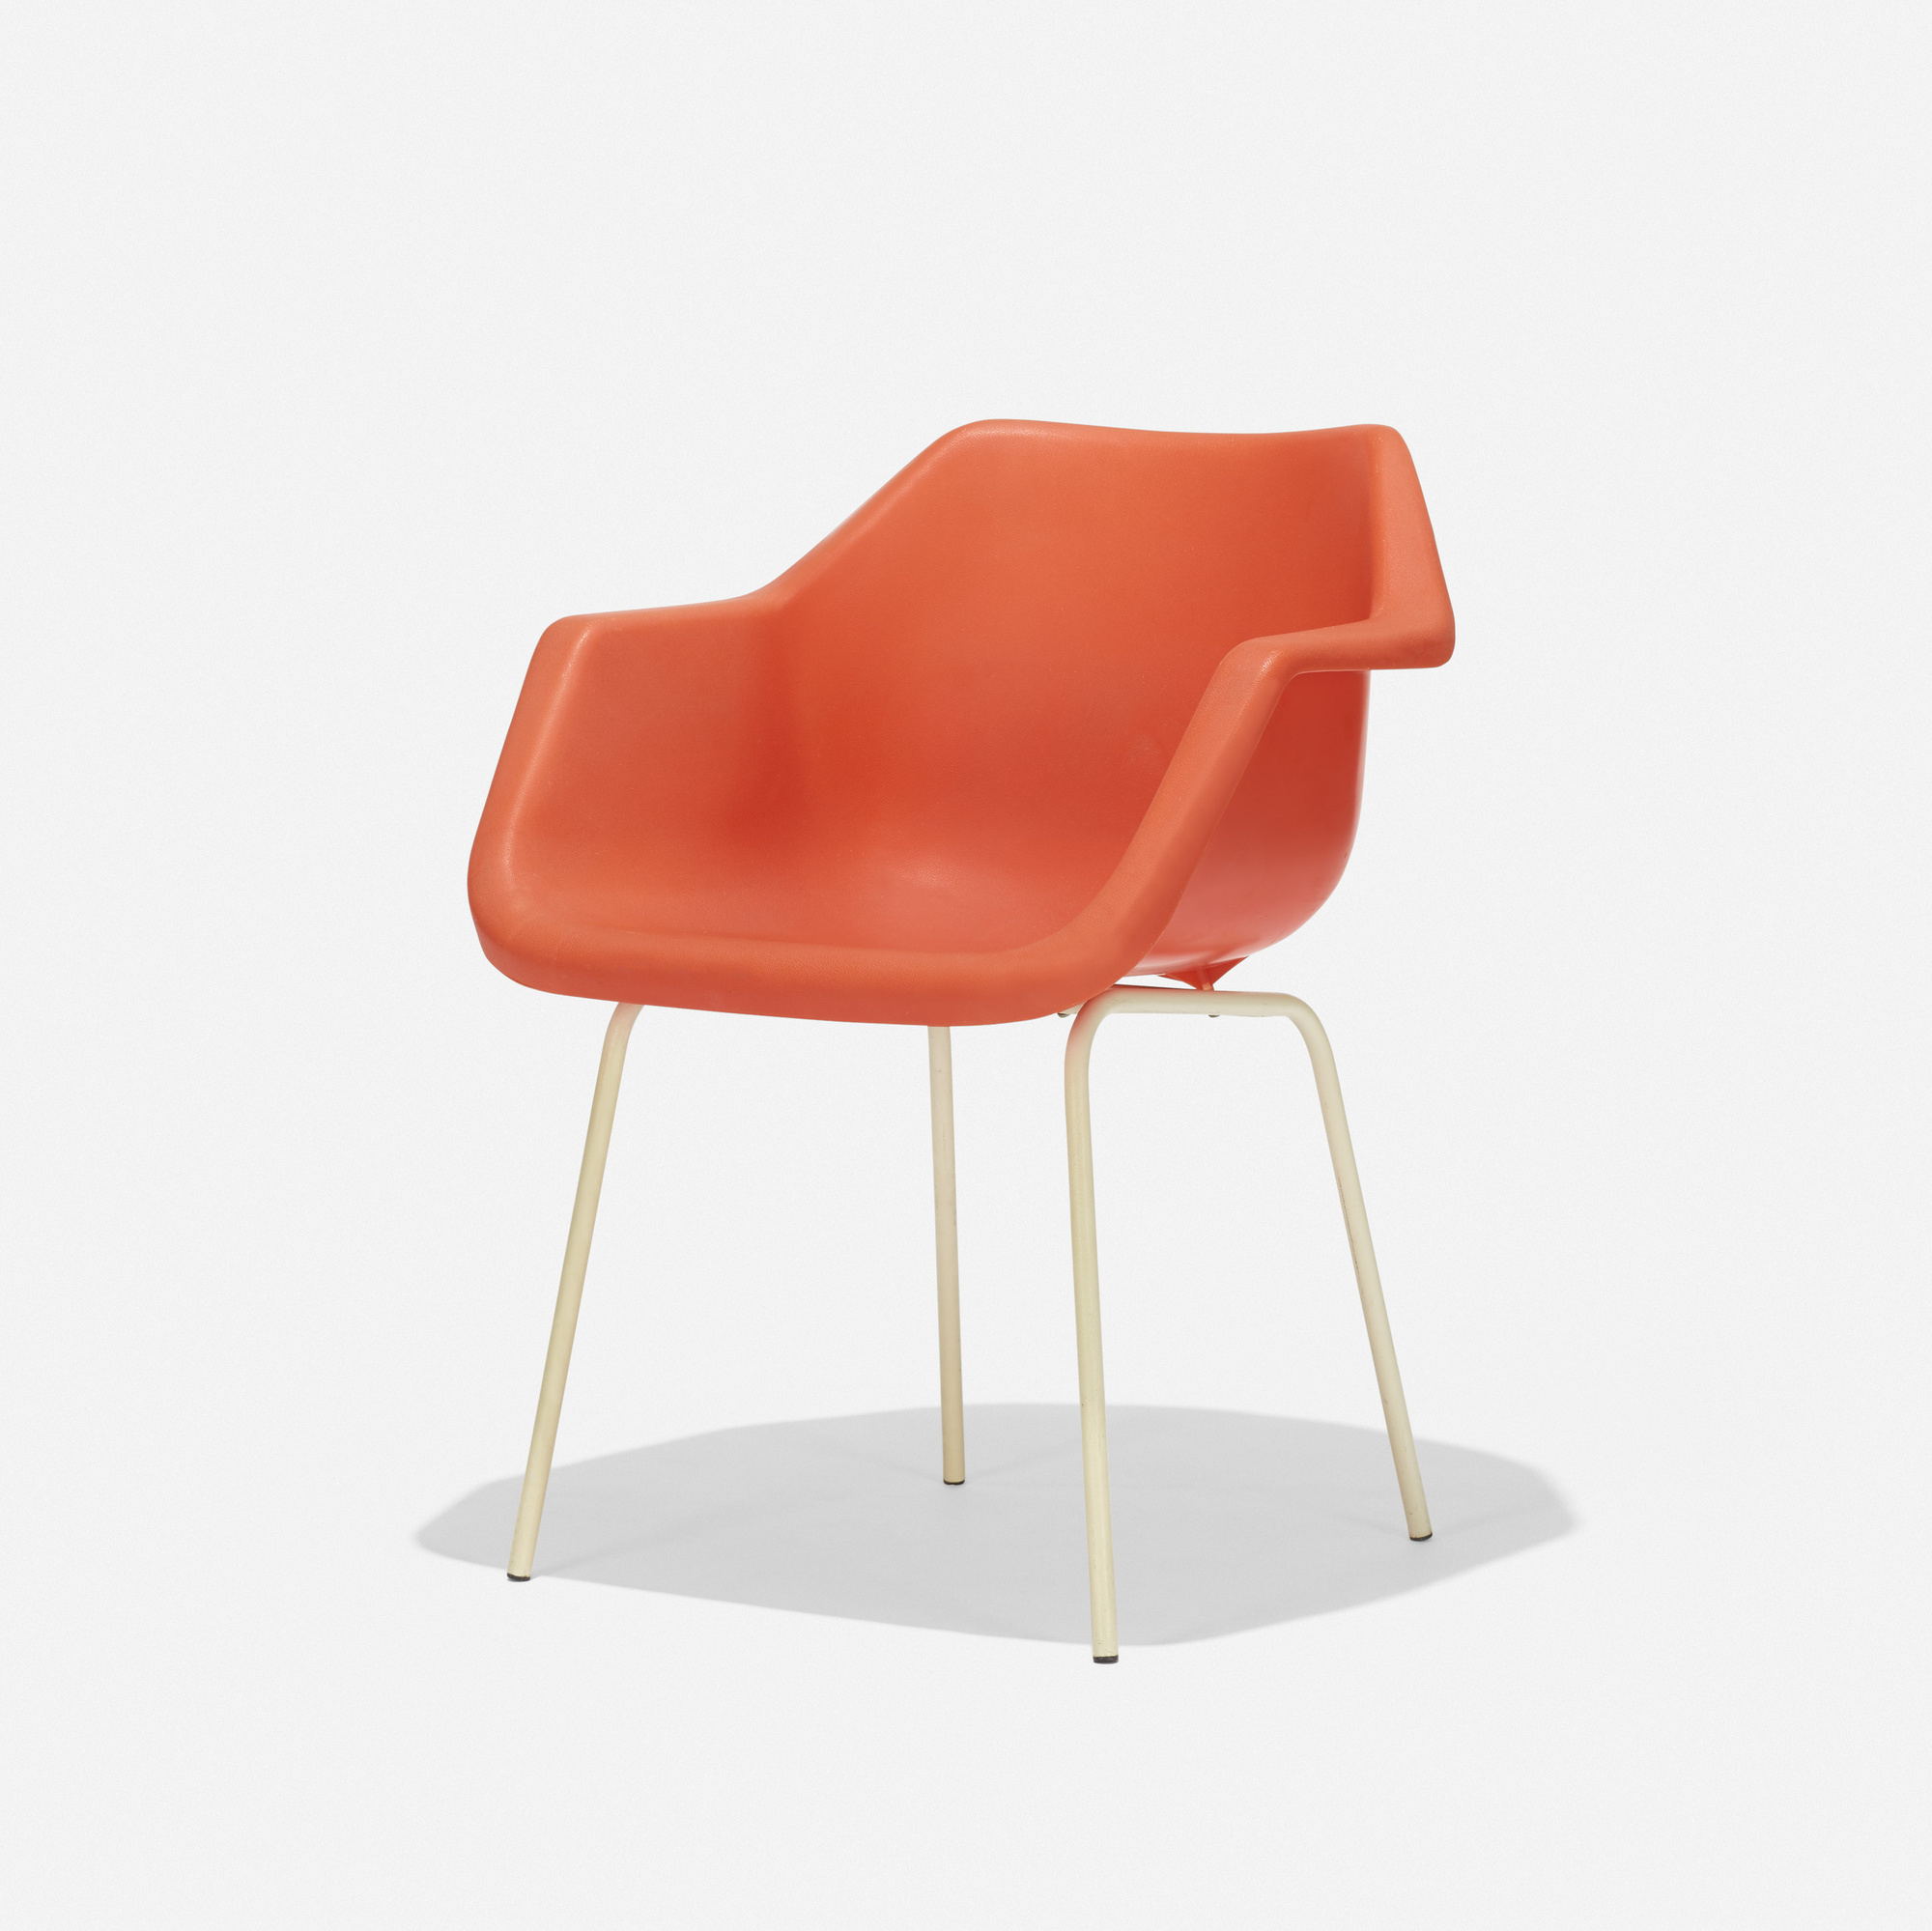 210: Robin Day / armchair (1 of 4)